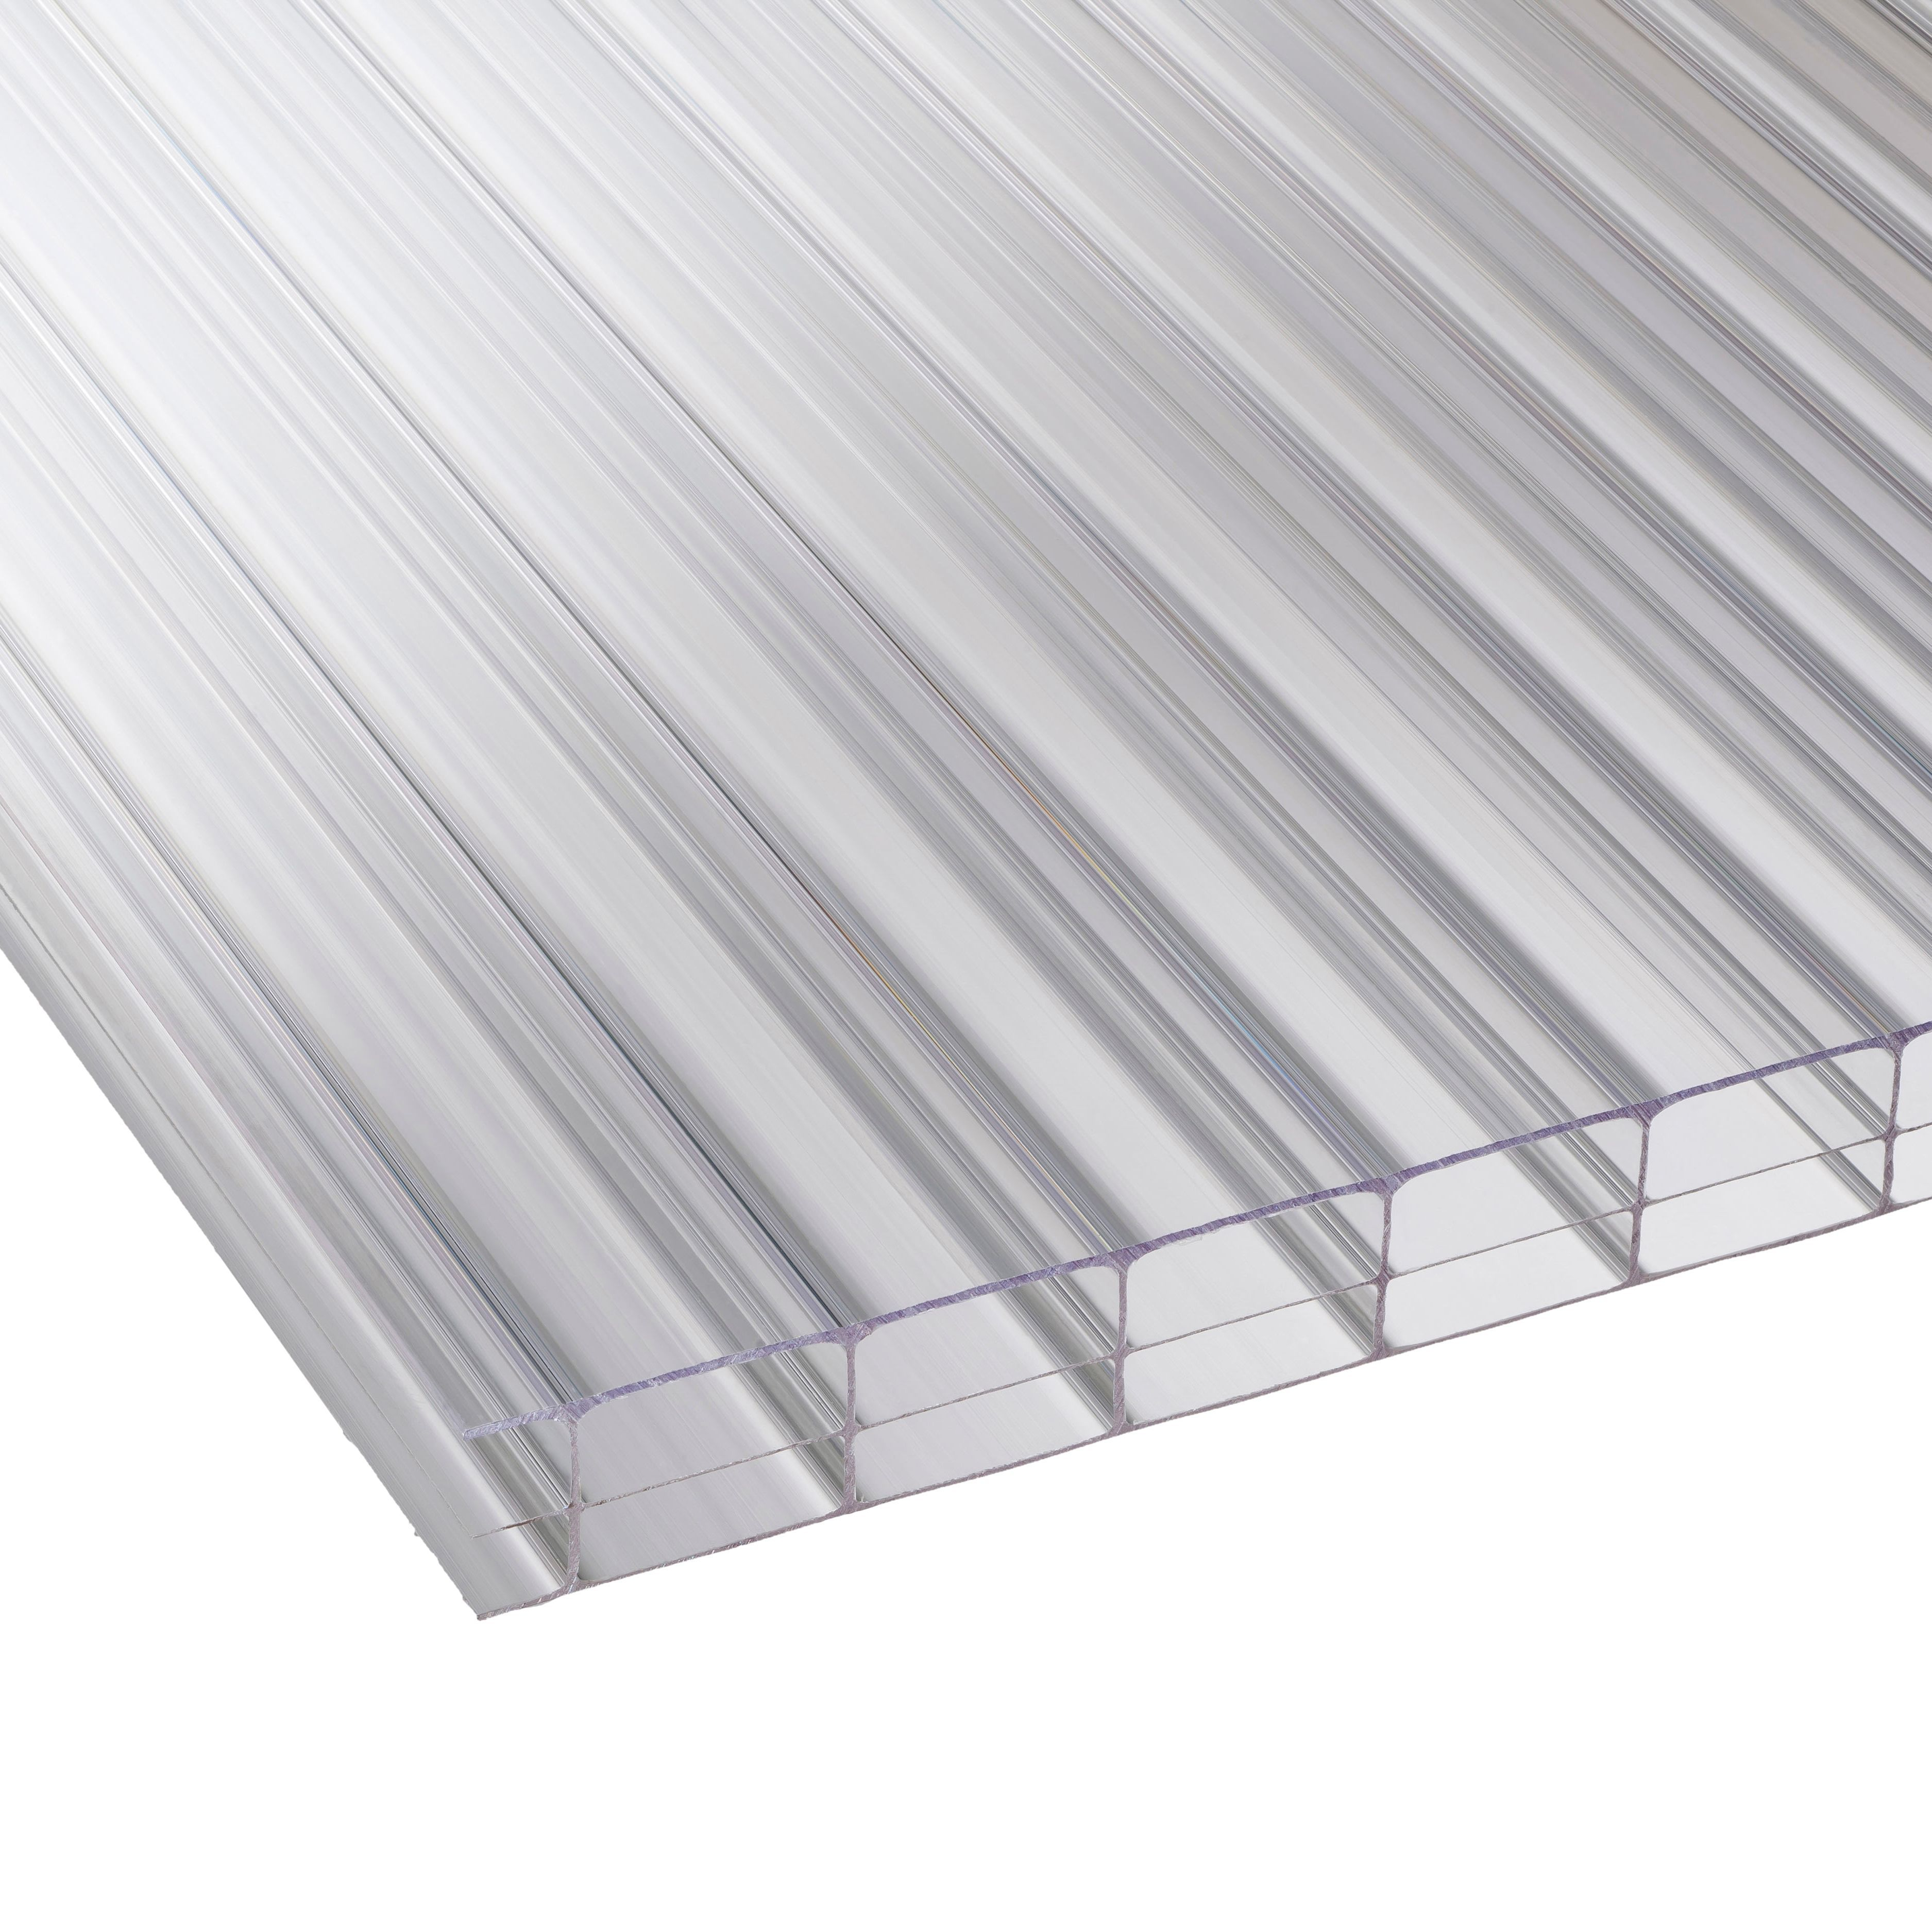 Clear Multiwall Polycarbonate Roofing Sheet 3m X 980mm, Pack Of 5